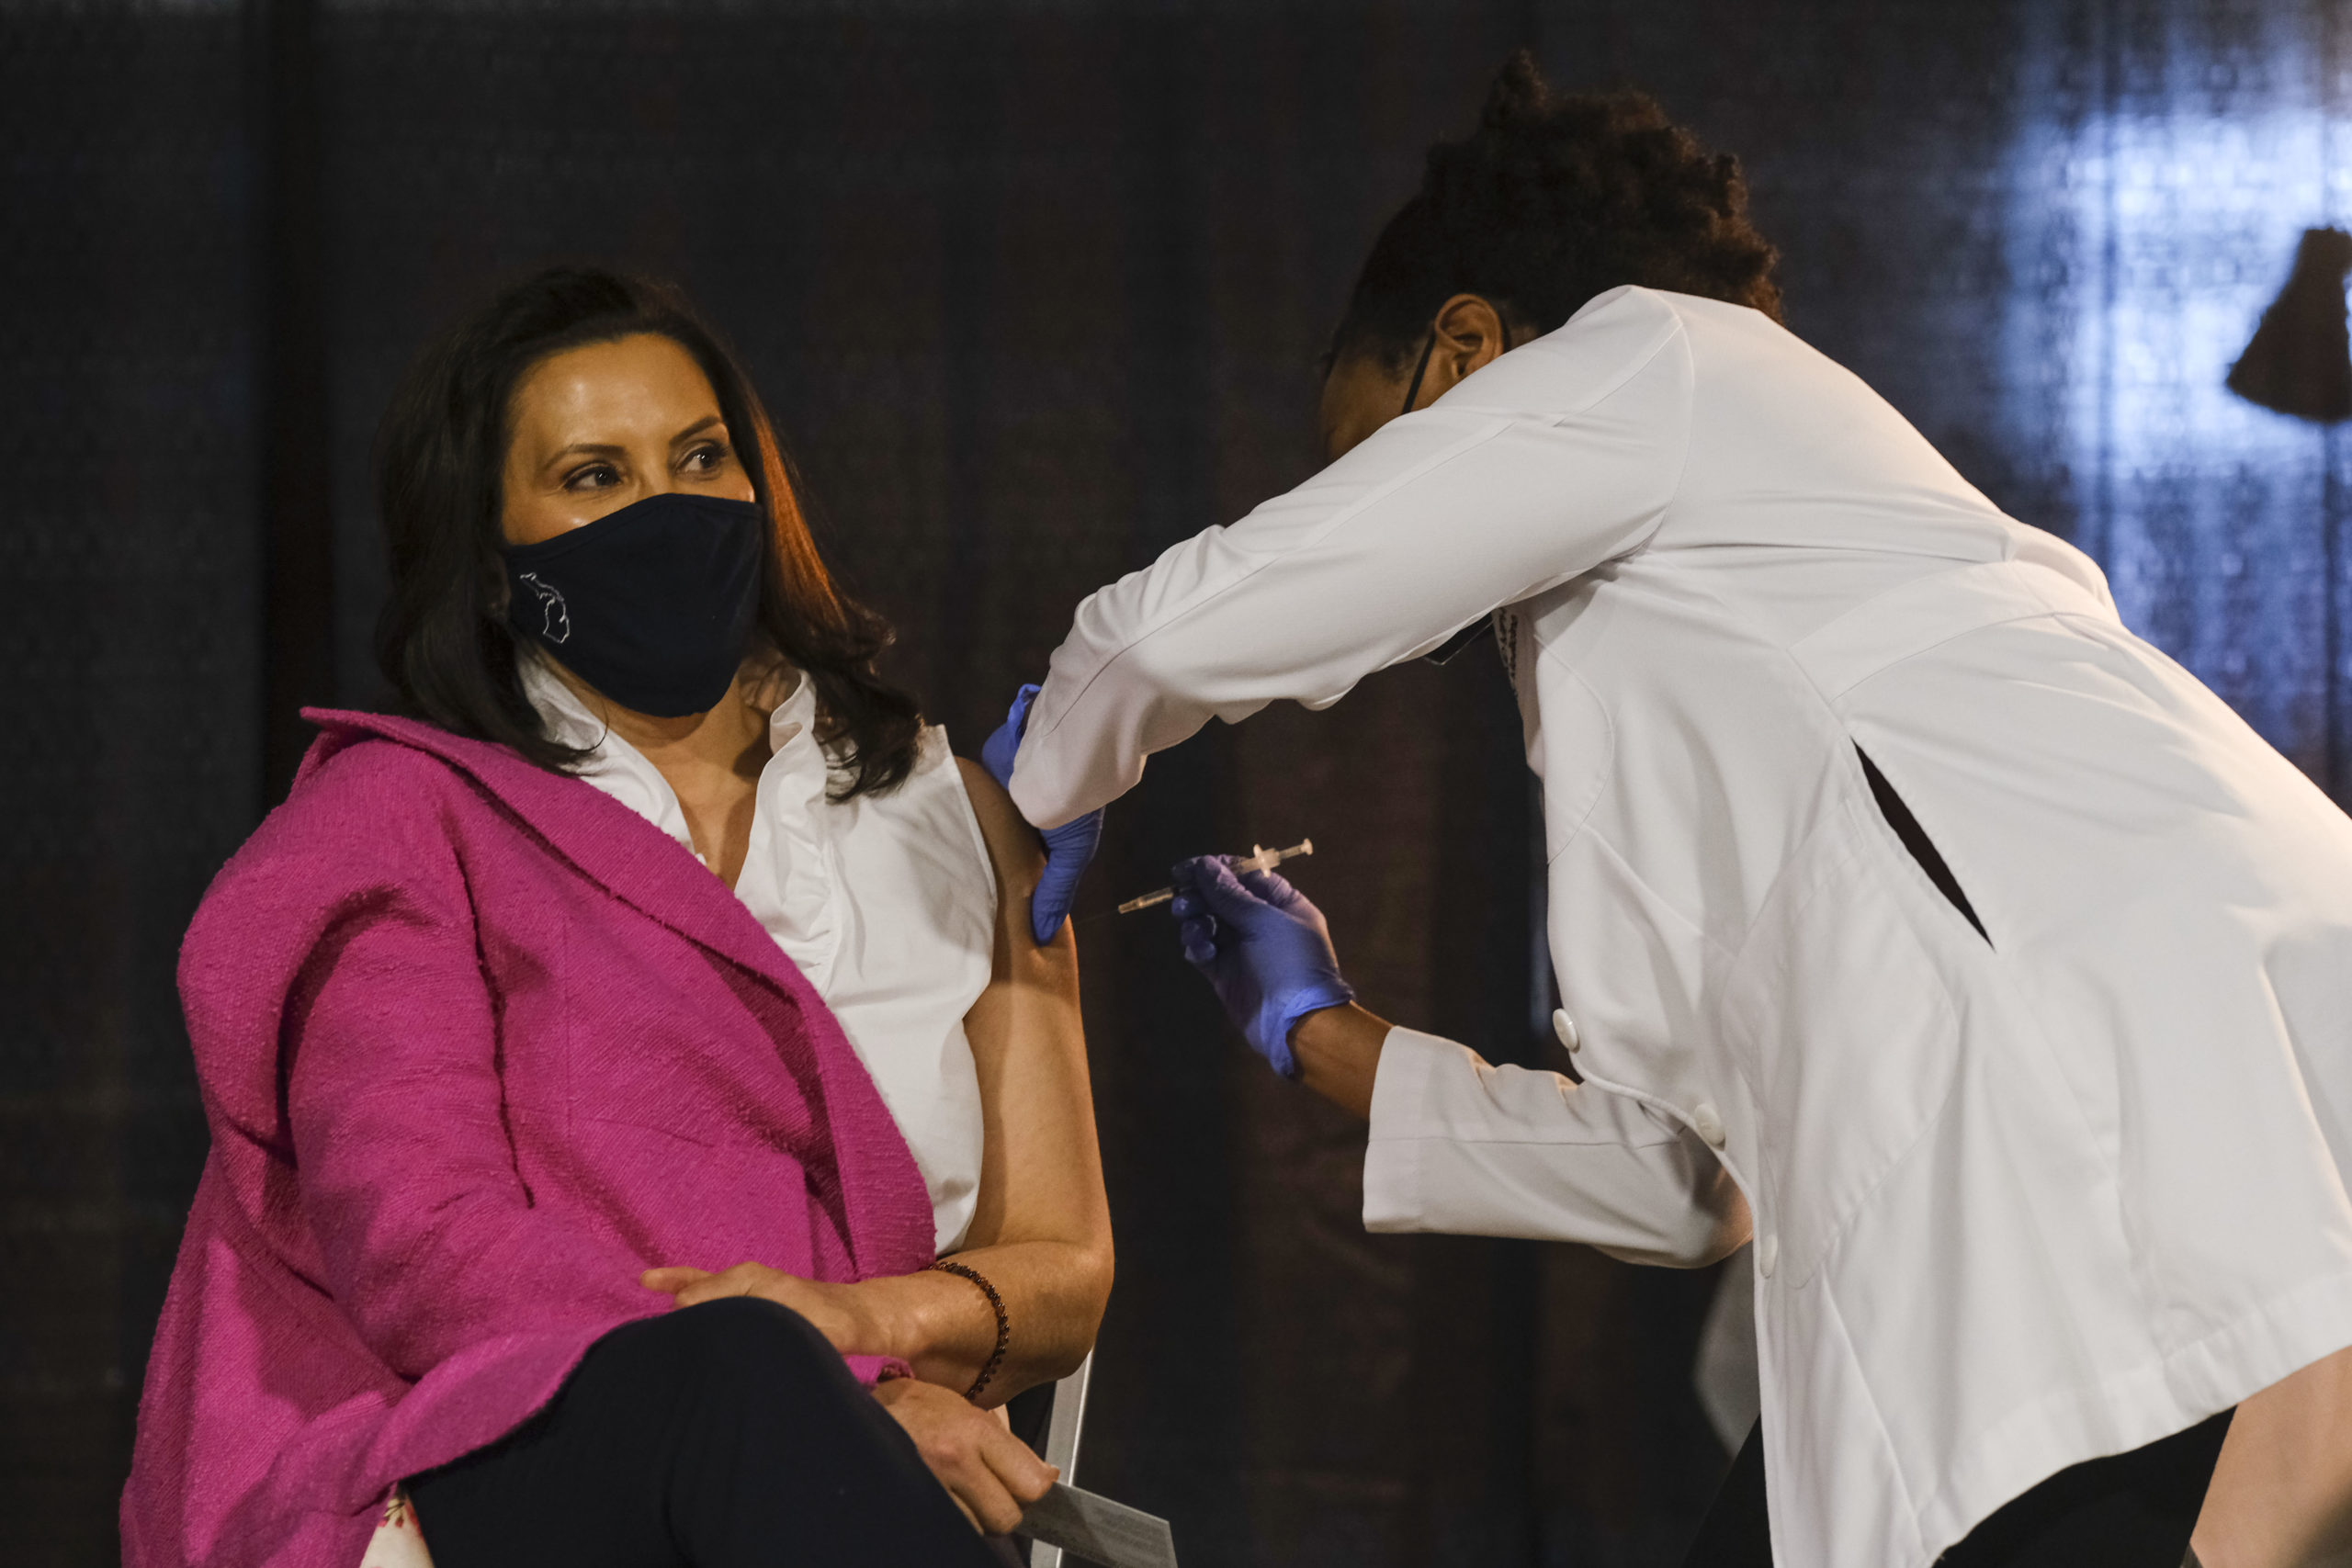 Michigan Governor Gretchen Whitmer receives a dose of the Pfizer Covid vaccine at Ford Field during an event to promote and encourage Michigan residents to get the vaccine on April 6, 2021 in Detroit, Michigan. As the US reaches a milestone in vaccinations, a surge of new Covid-19 cases has swept through the US with Michigan seeing the highest numbers of new cases. (Photo by Matthew Hatcher/Getty Images)